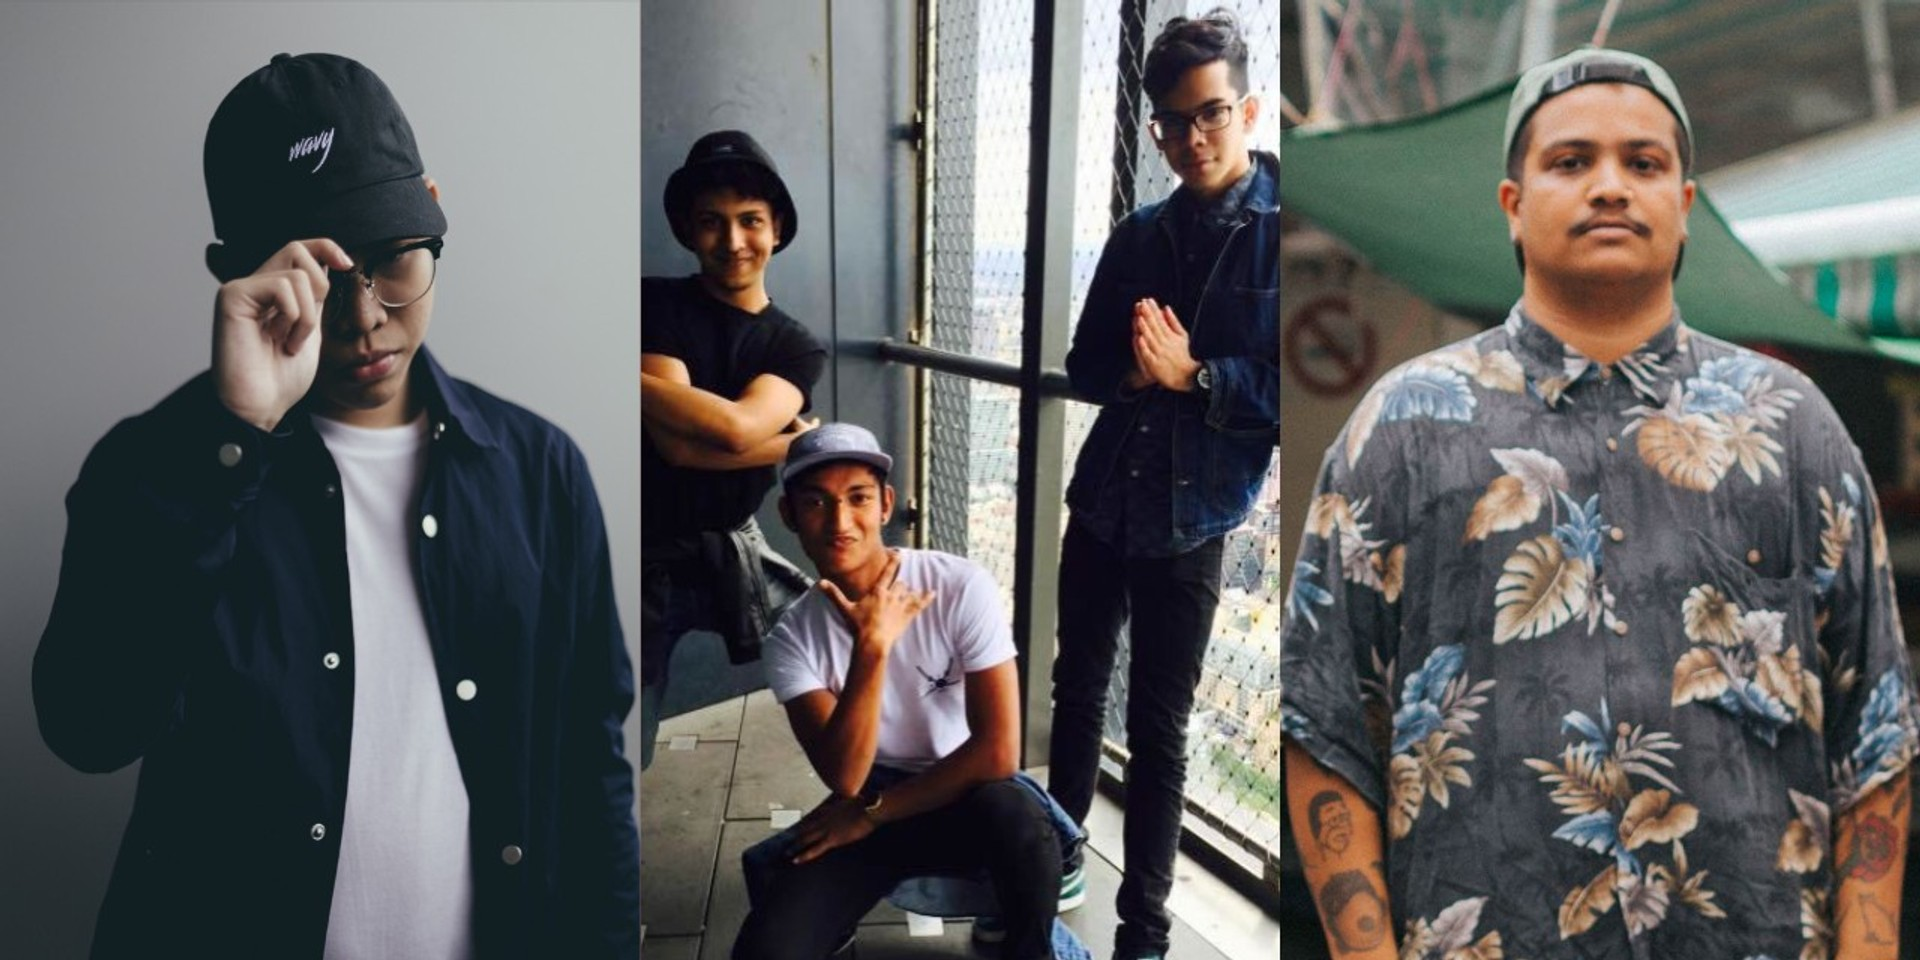 BREAKING: Mediocre Haircut Crew, Fauxe, Perk Pietrek and more added to Neon Lights line-up